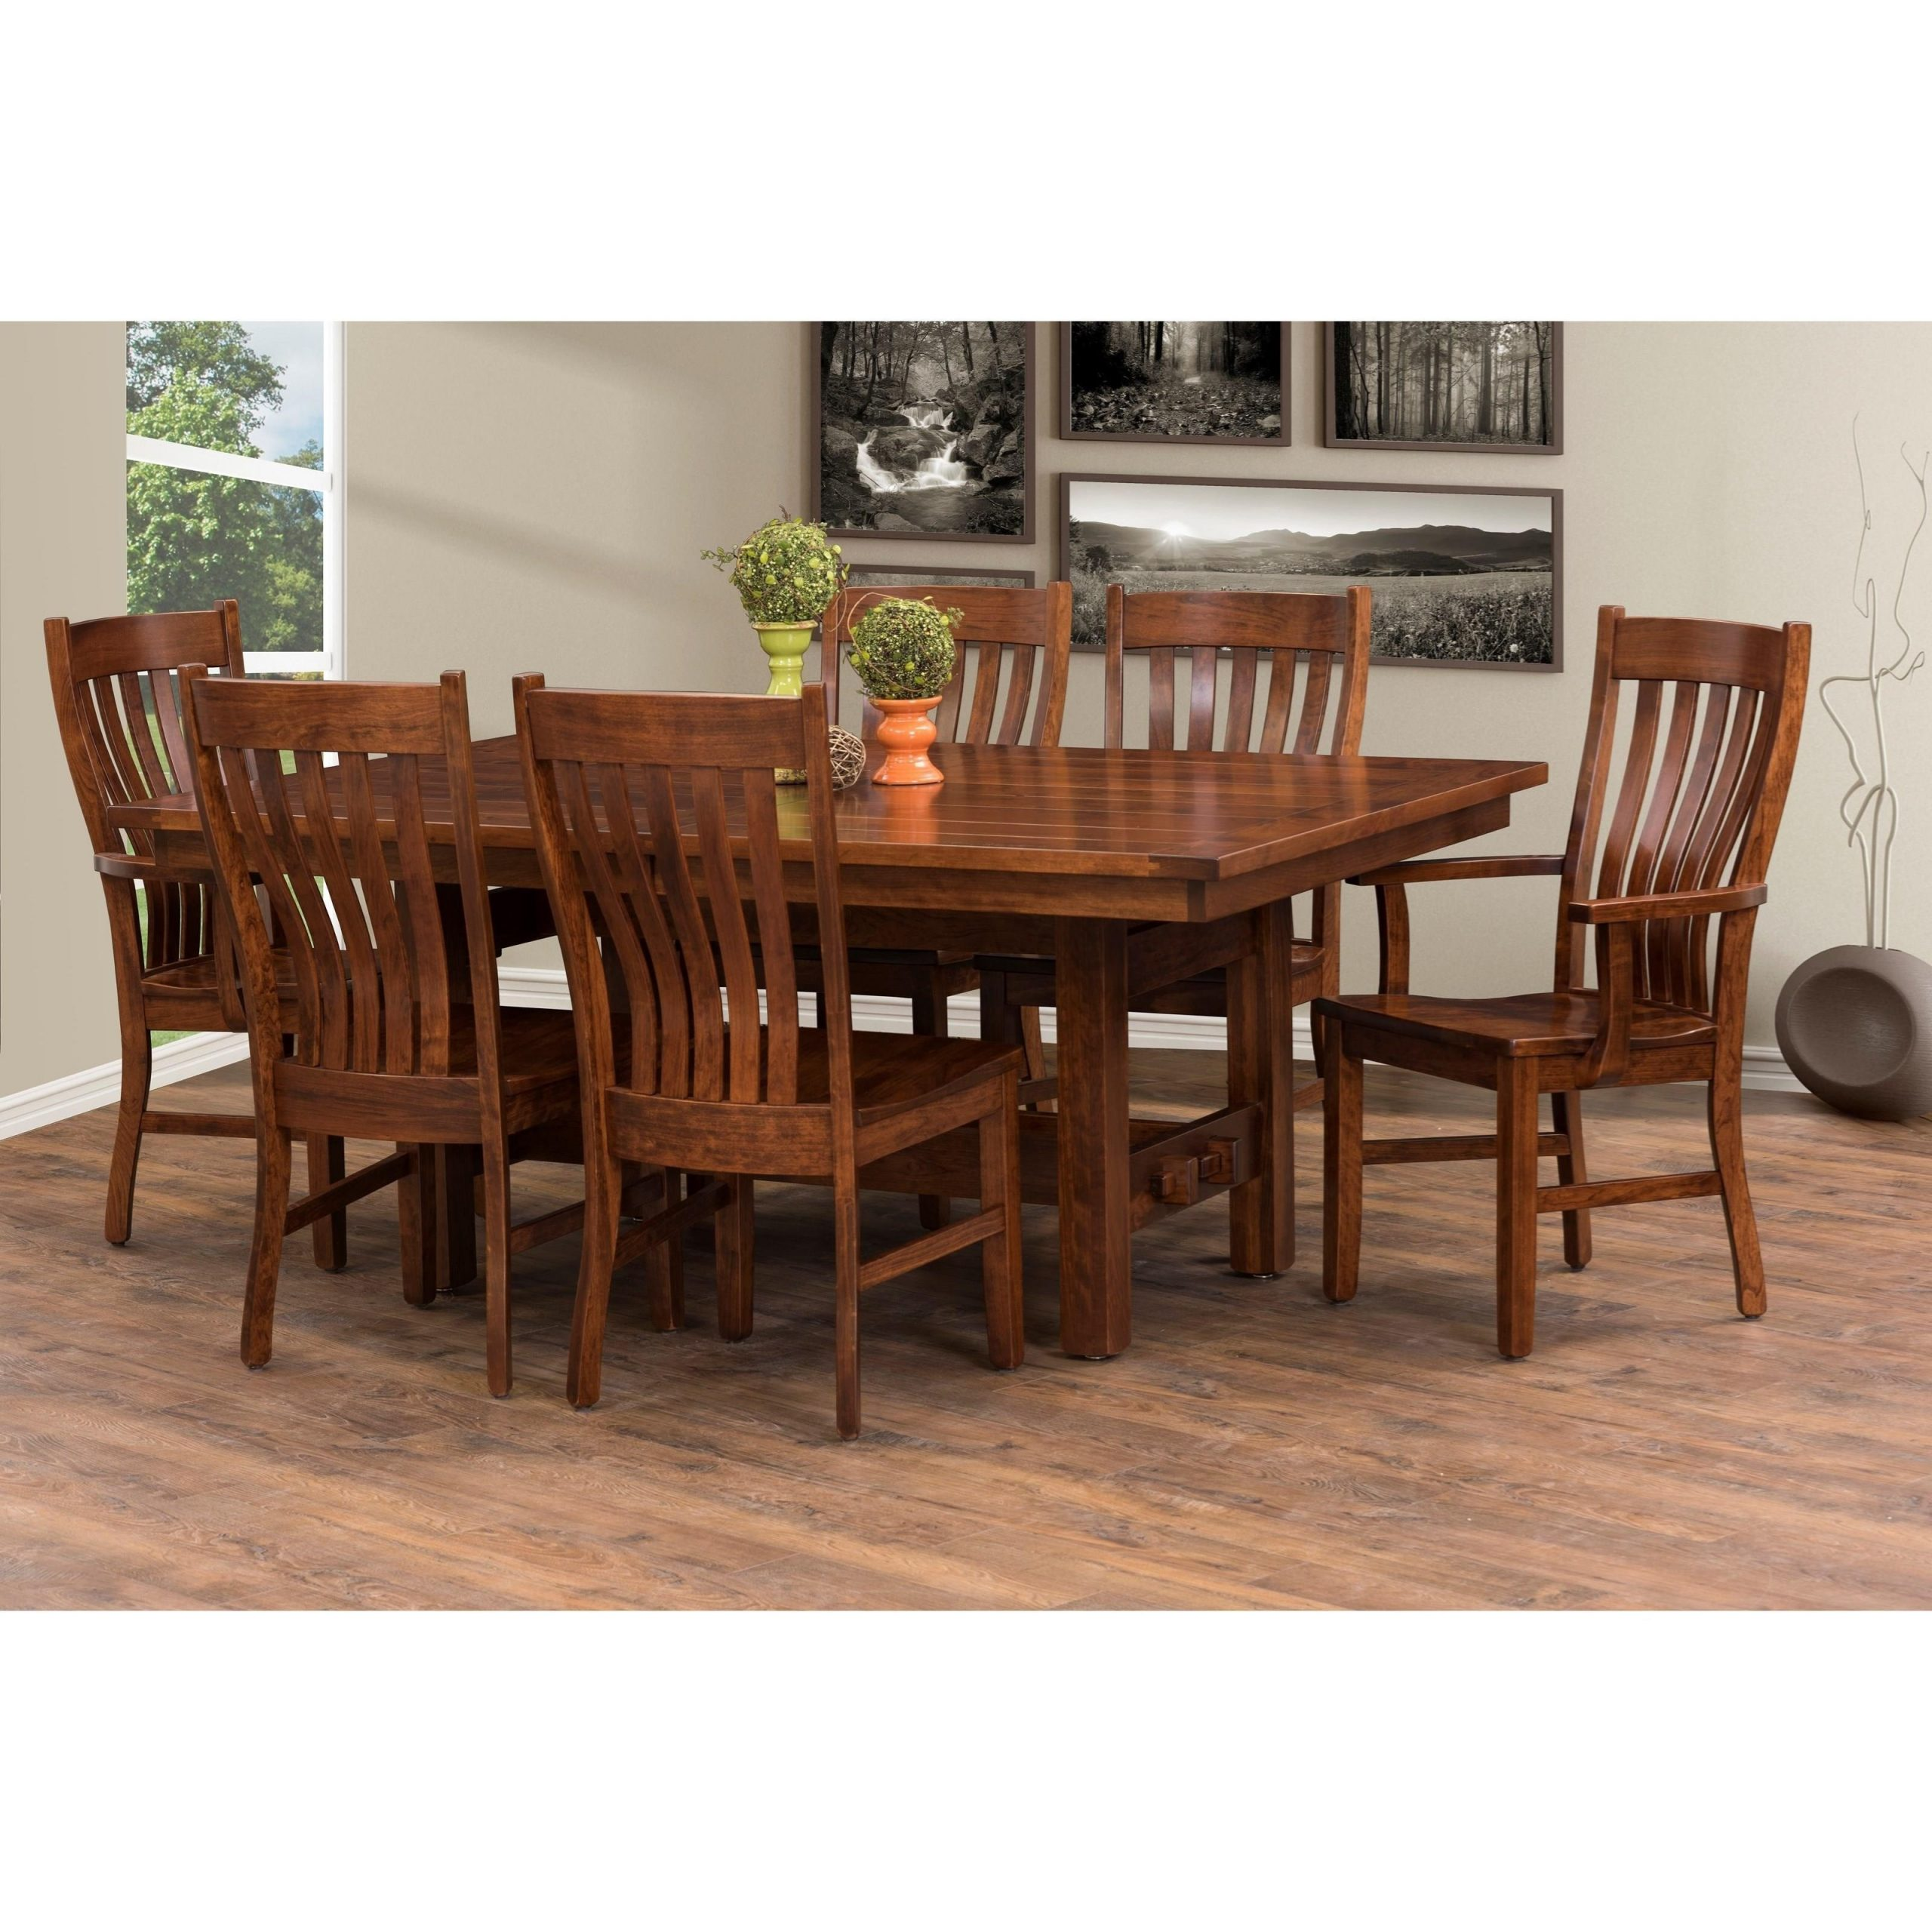 """Trailway Amish Sutter Mills 48 X 72"""" Trestle Dining Table With Regard To Most Recently Released 72"""" L Breakroom Tables And Chair Set (View 11 of 15)"""